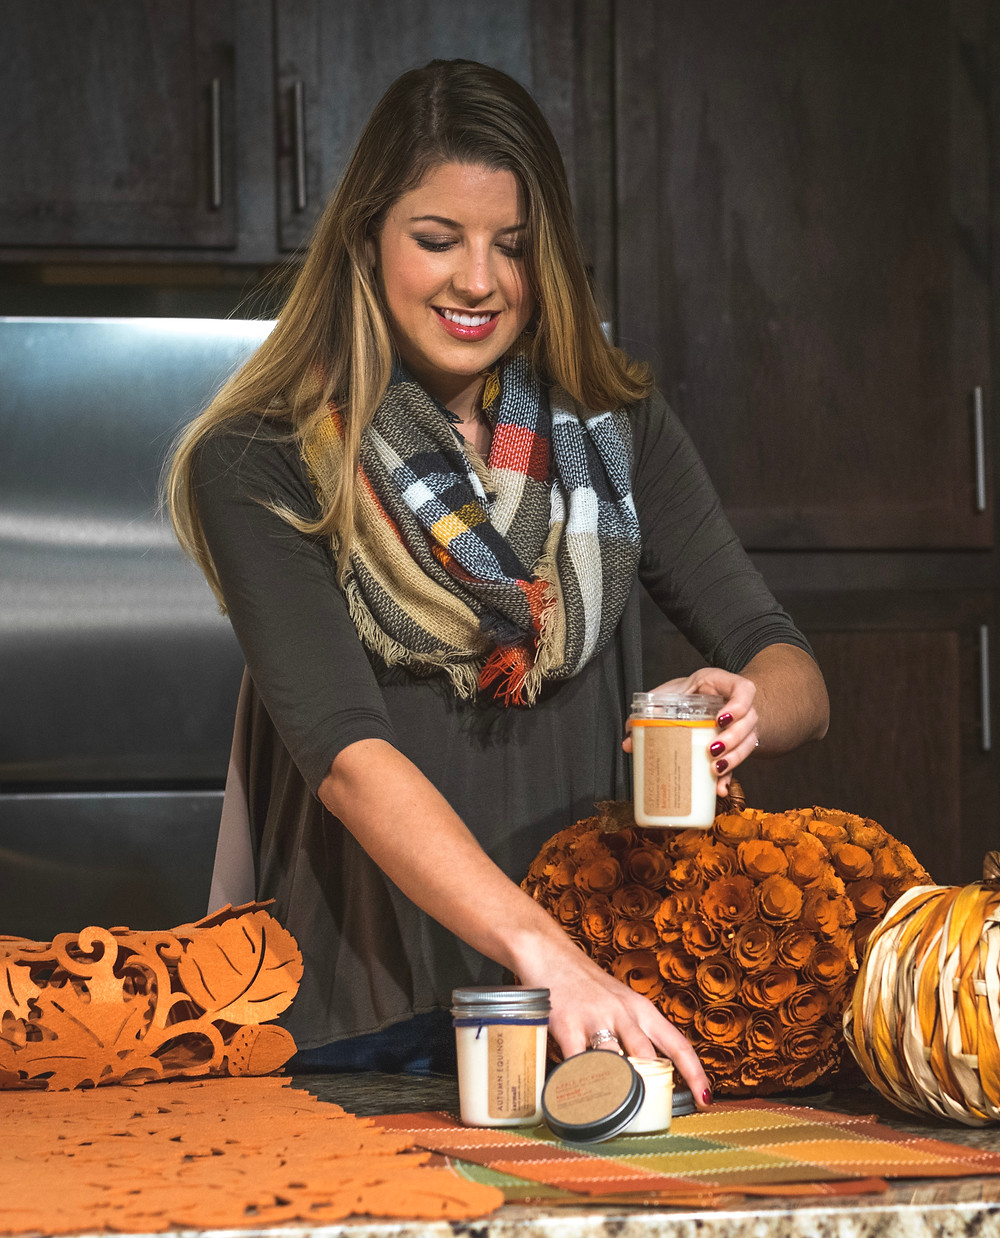 Holly Canon Blog Travel and Lifestyle Fall Home Karmalit Candles Denver Colorado Blogger